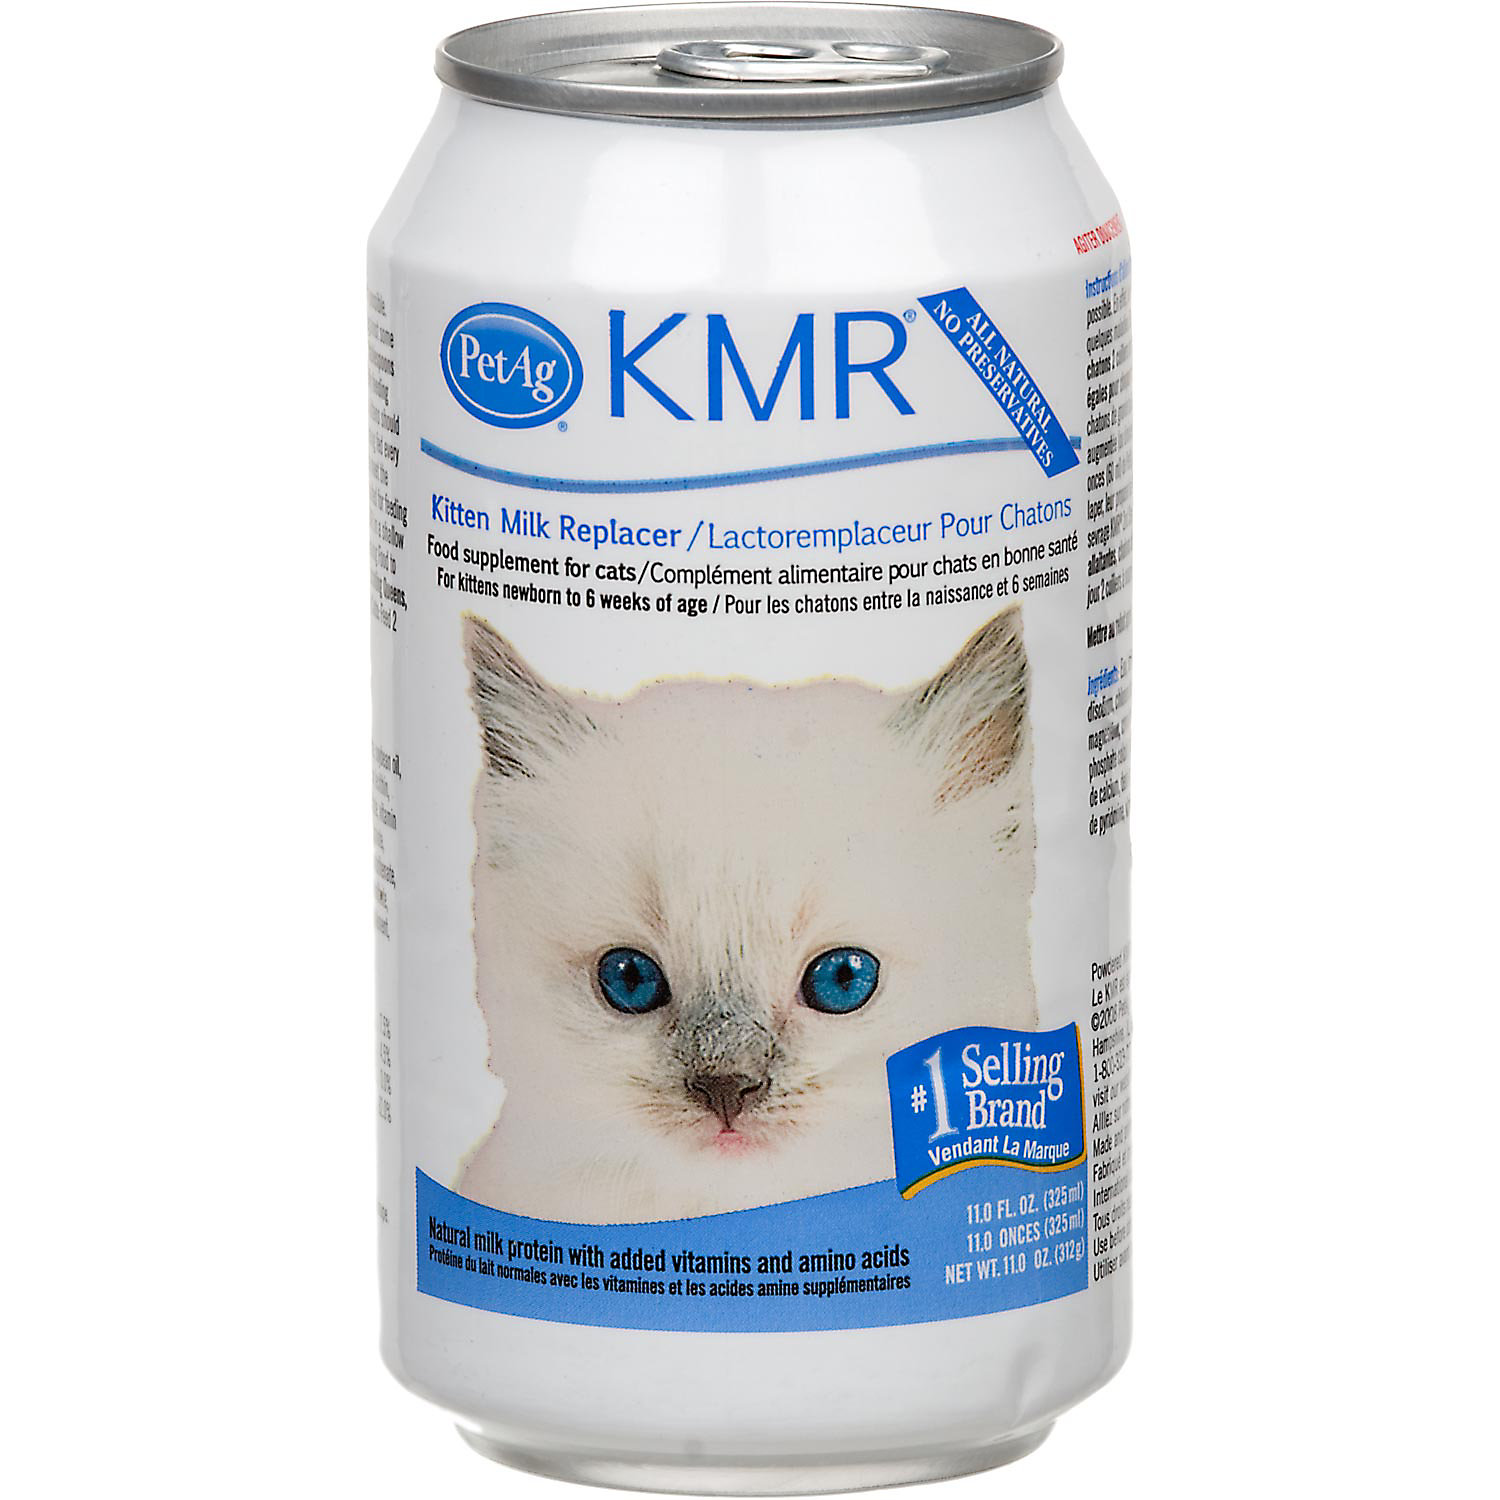 Pet Ag Kmr Milk Replacer Food Supplement For Kittens Small Animals Liquid